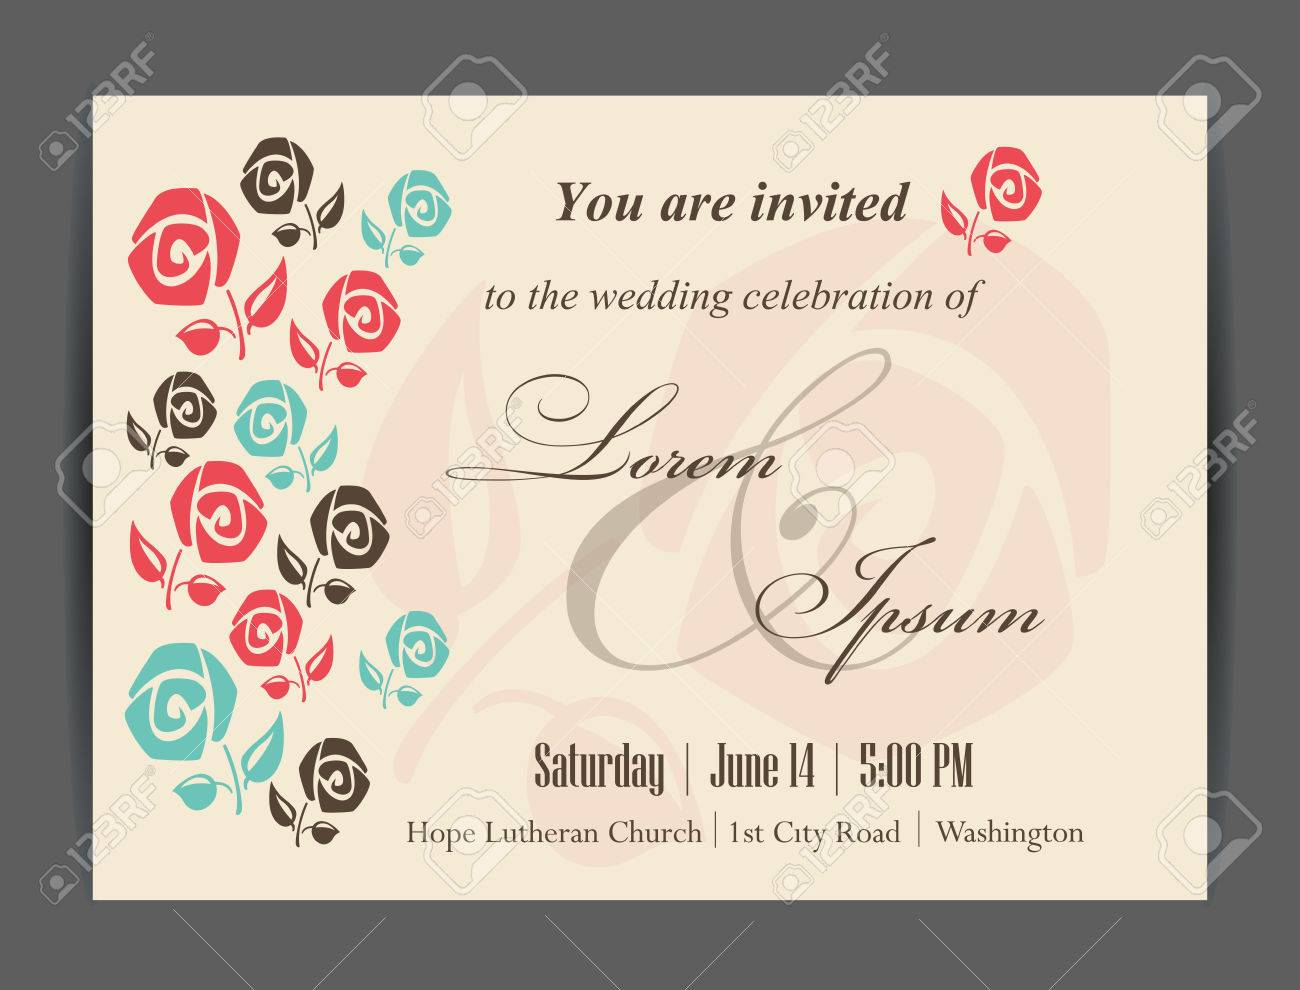 Mariage Carte D Invitation D Elements Floraux Vintage Background Vector Illustration